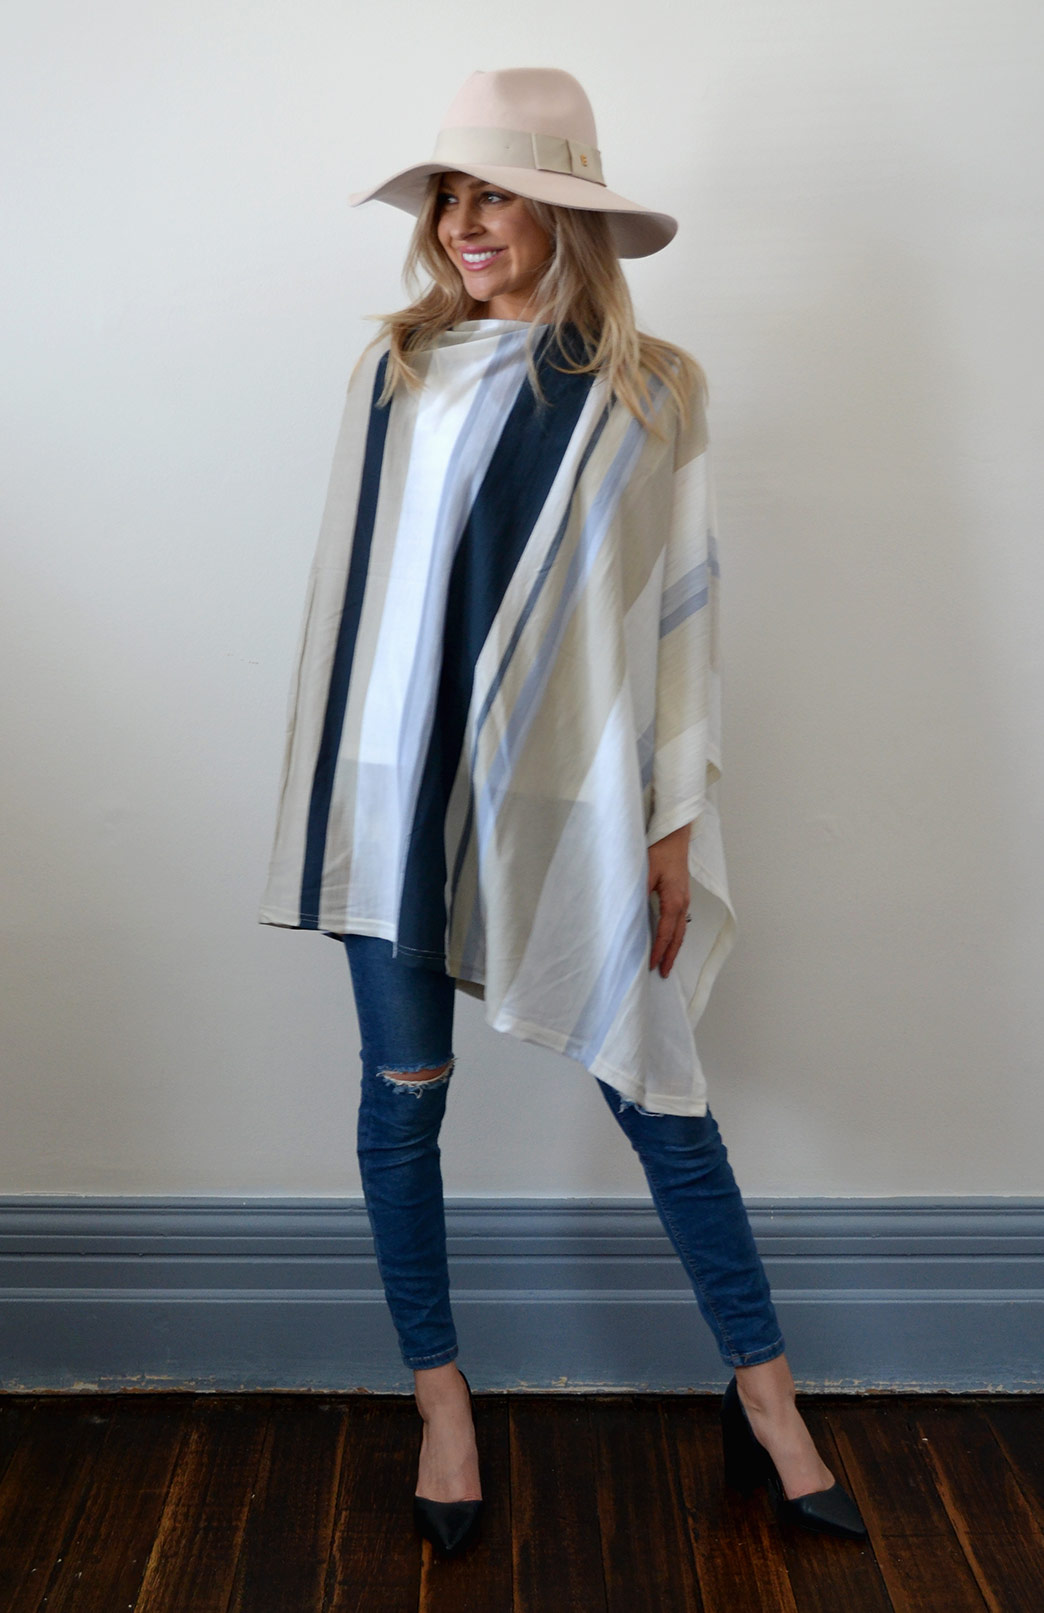 Oversized Poncho - Striped & Patterned - Women's Ivory Multi Striped Oversized Wool Poncho - Smitten Merino Tasmania Australia